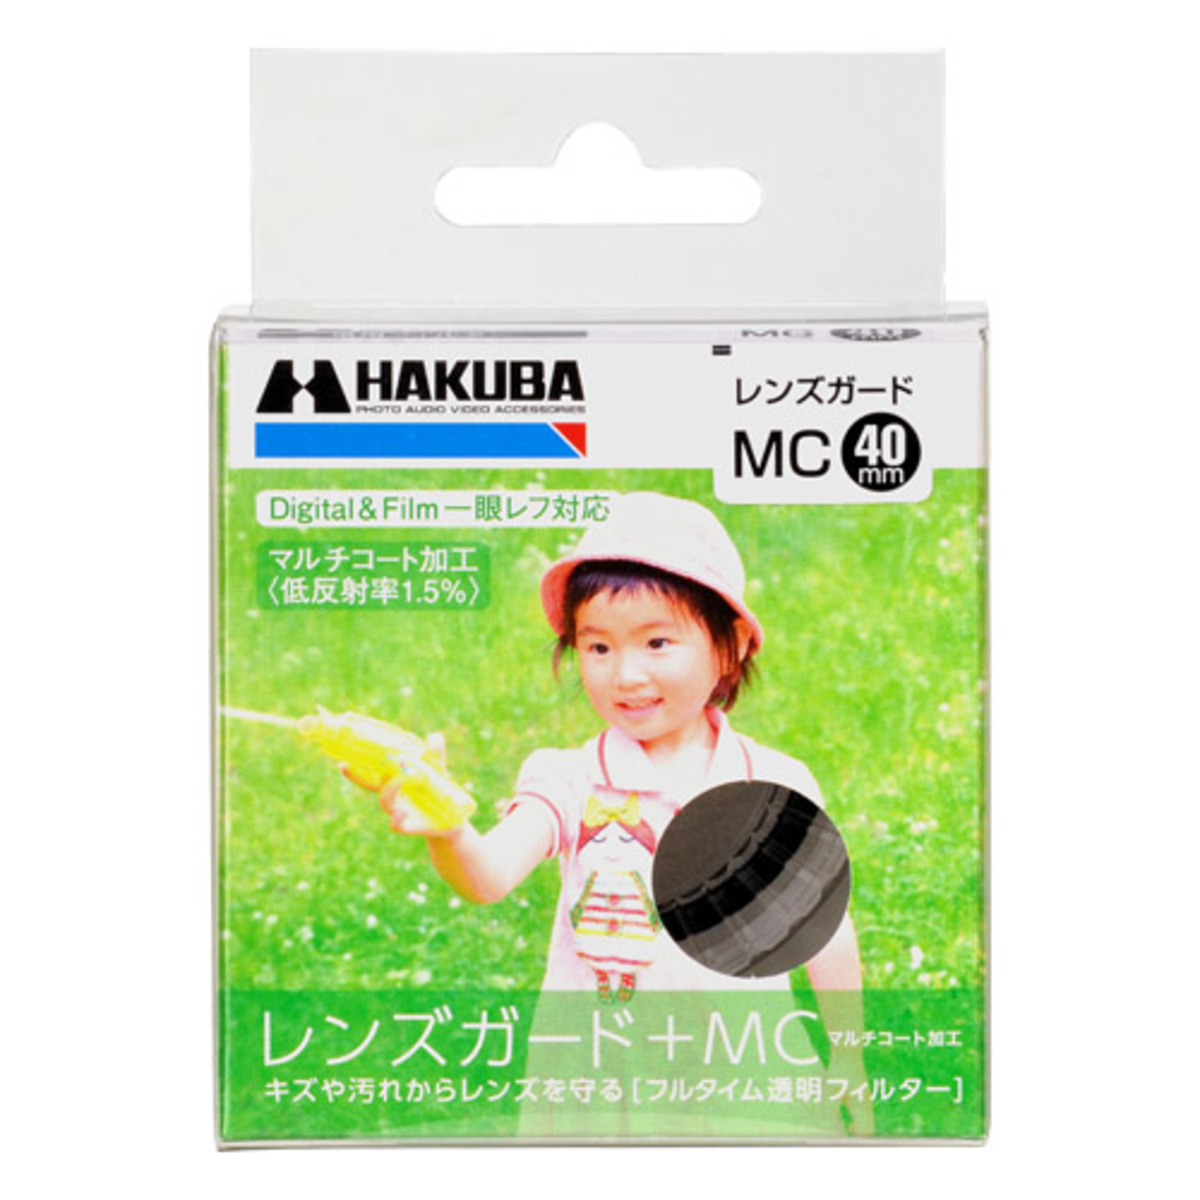 MC UV Protector 67mm Filter 鏡頭保護鏡